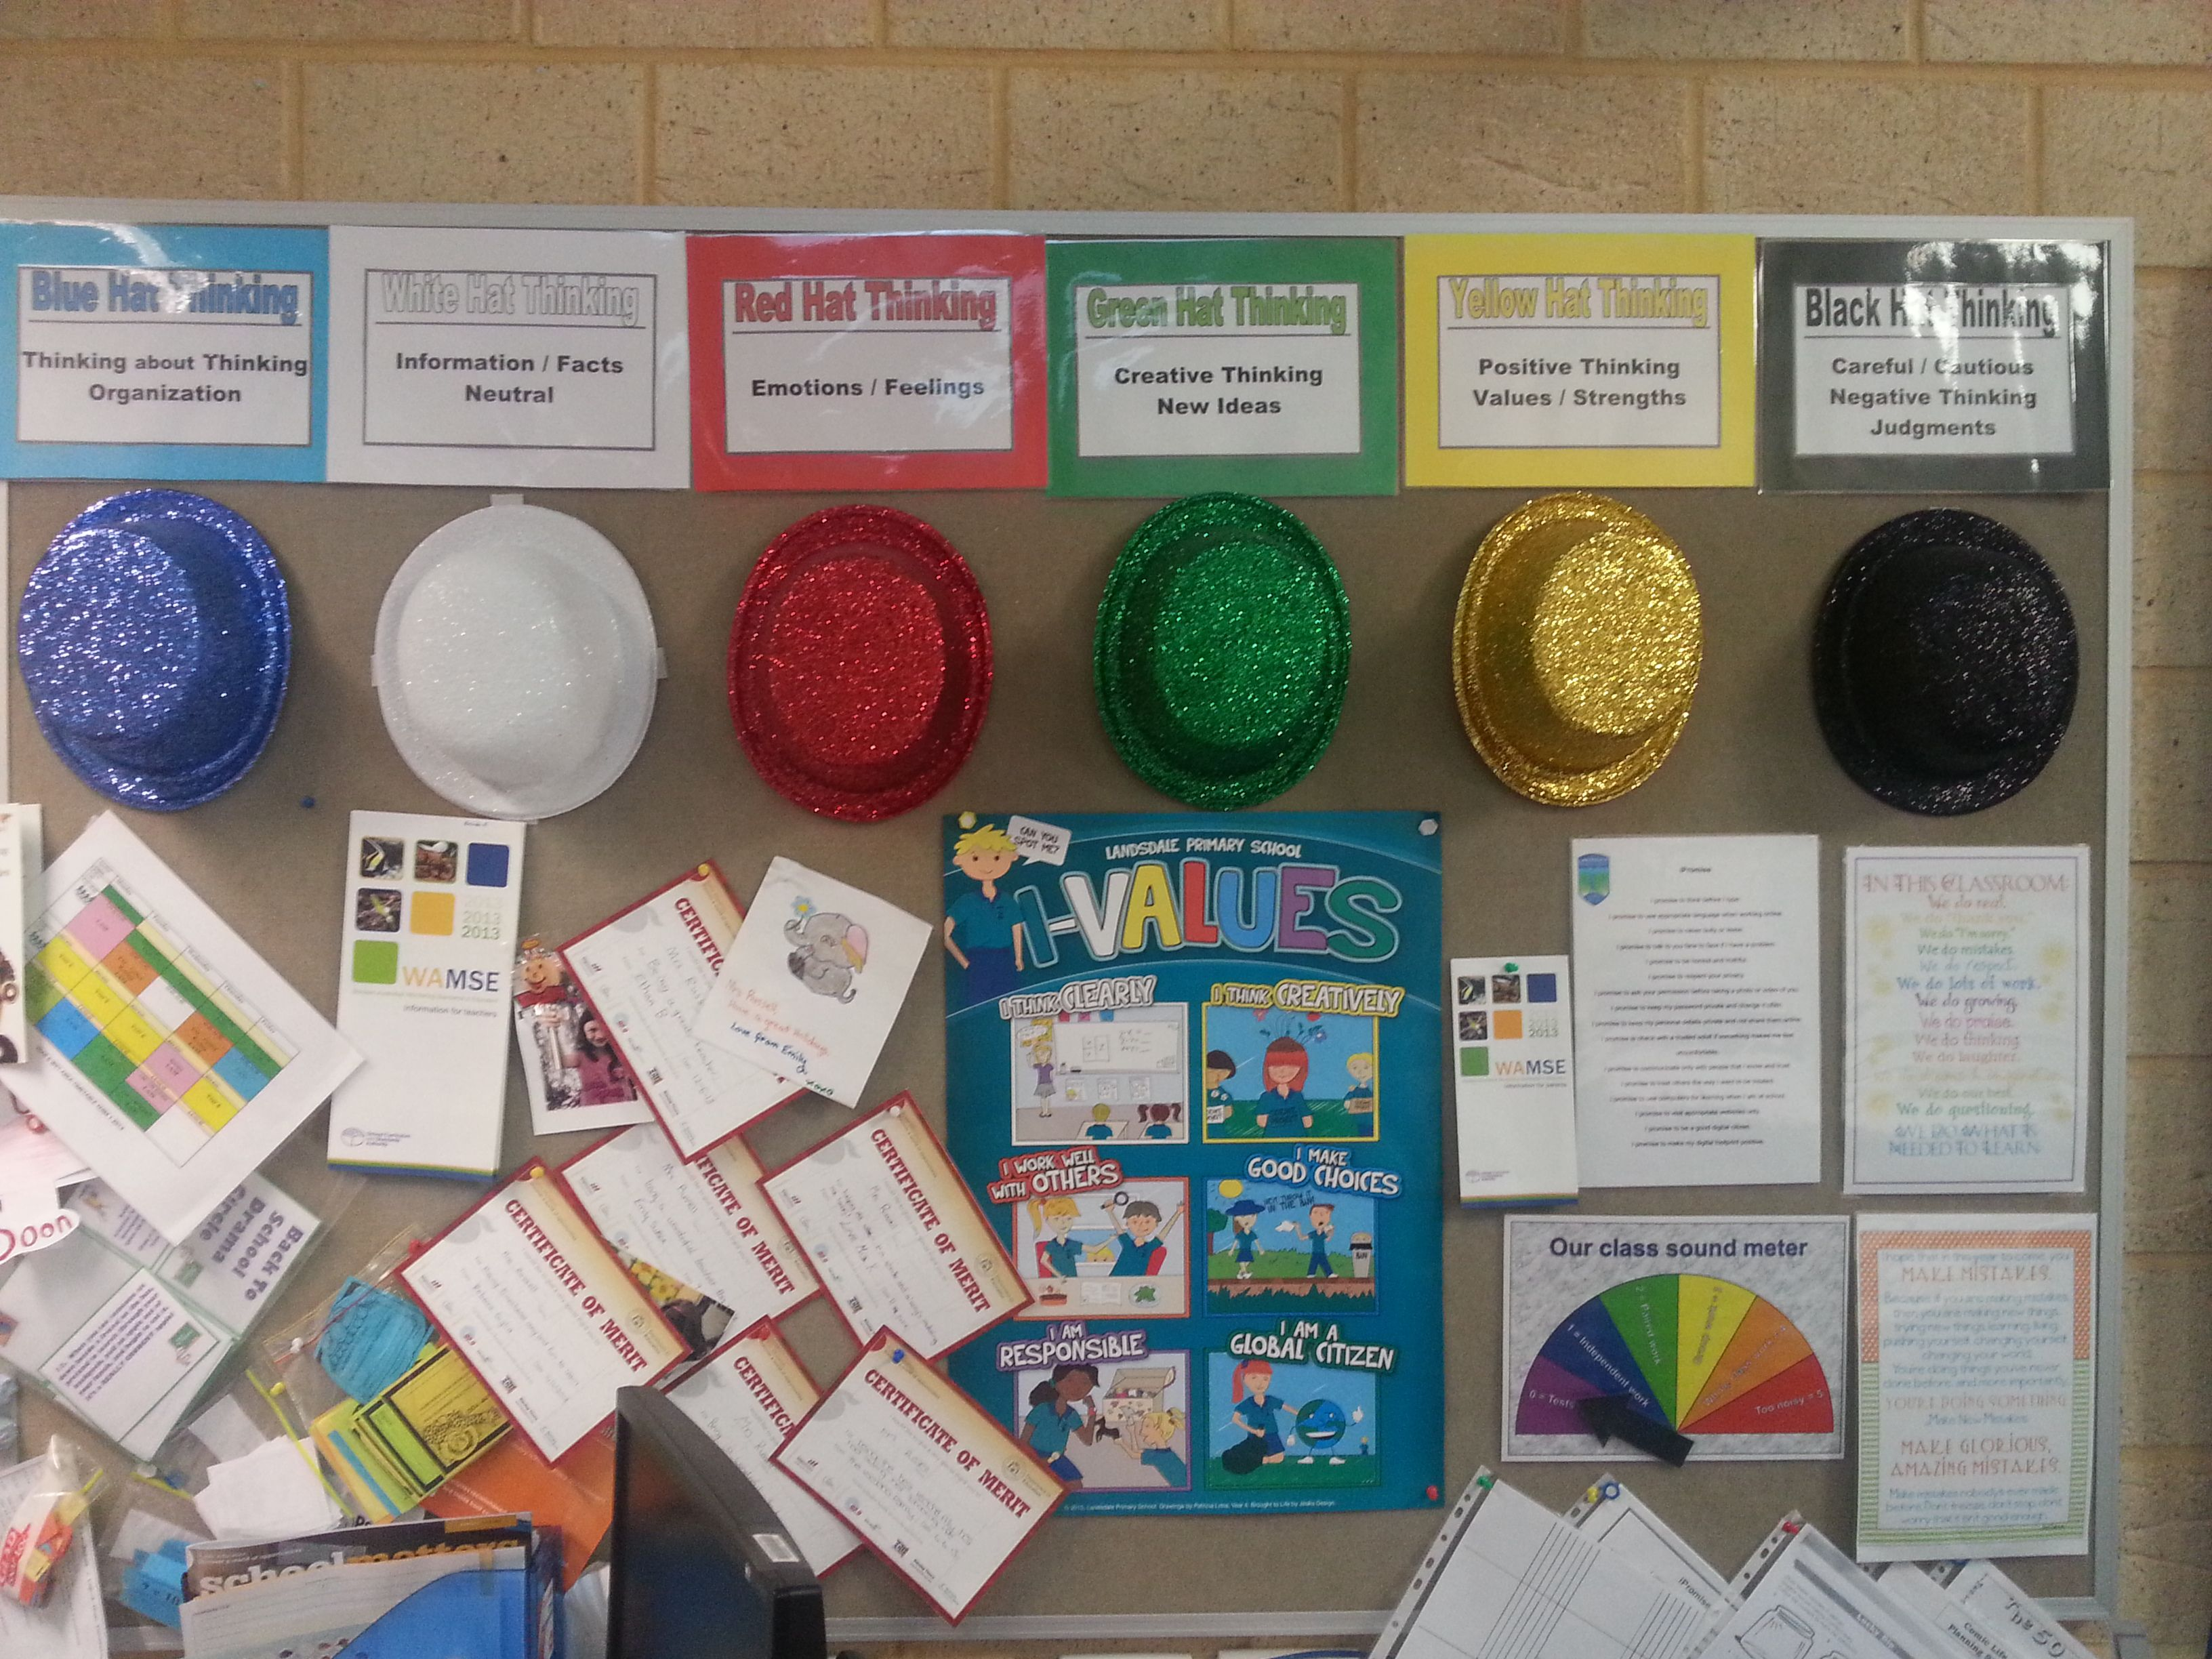 De Bono S Thinking Hats The Hats Are Straight From Woolworths And There Are Many Printable